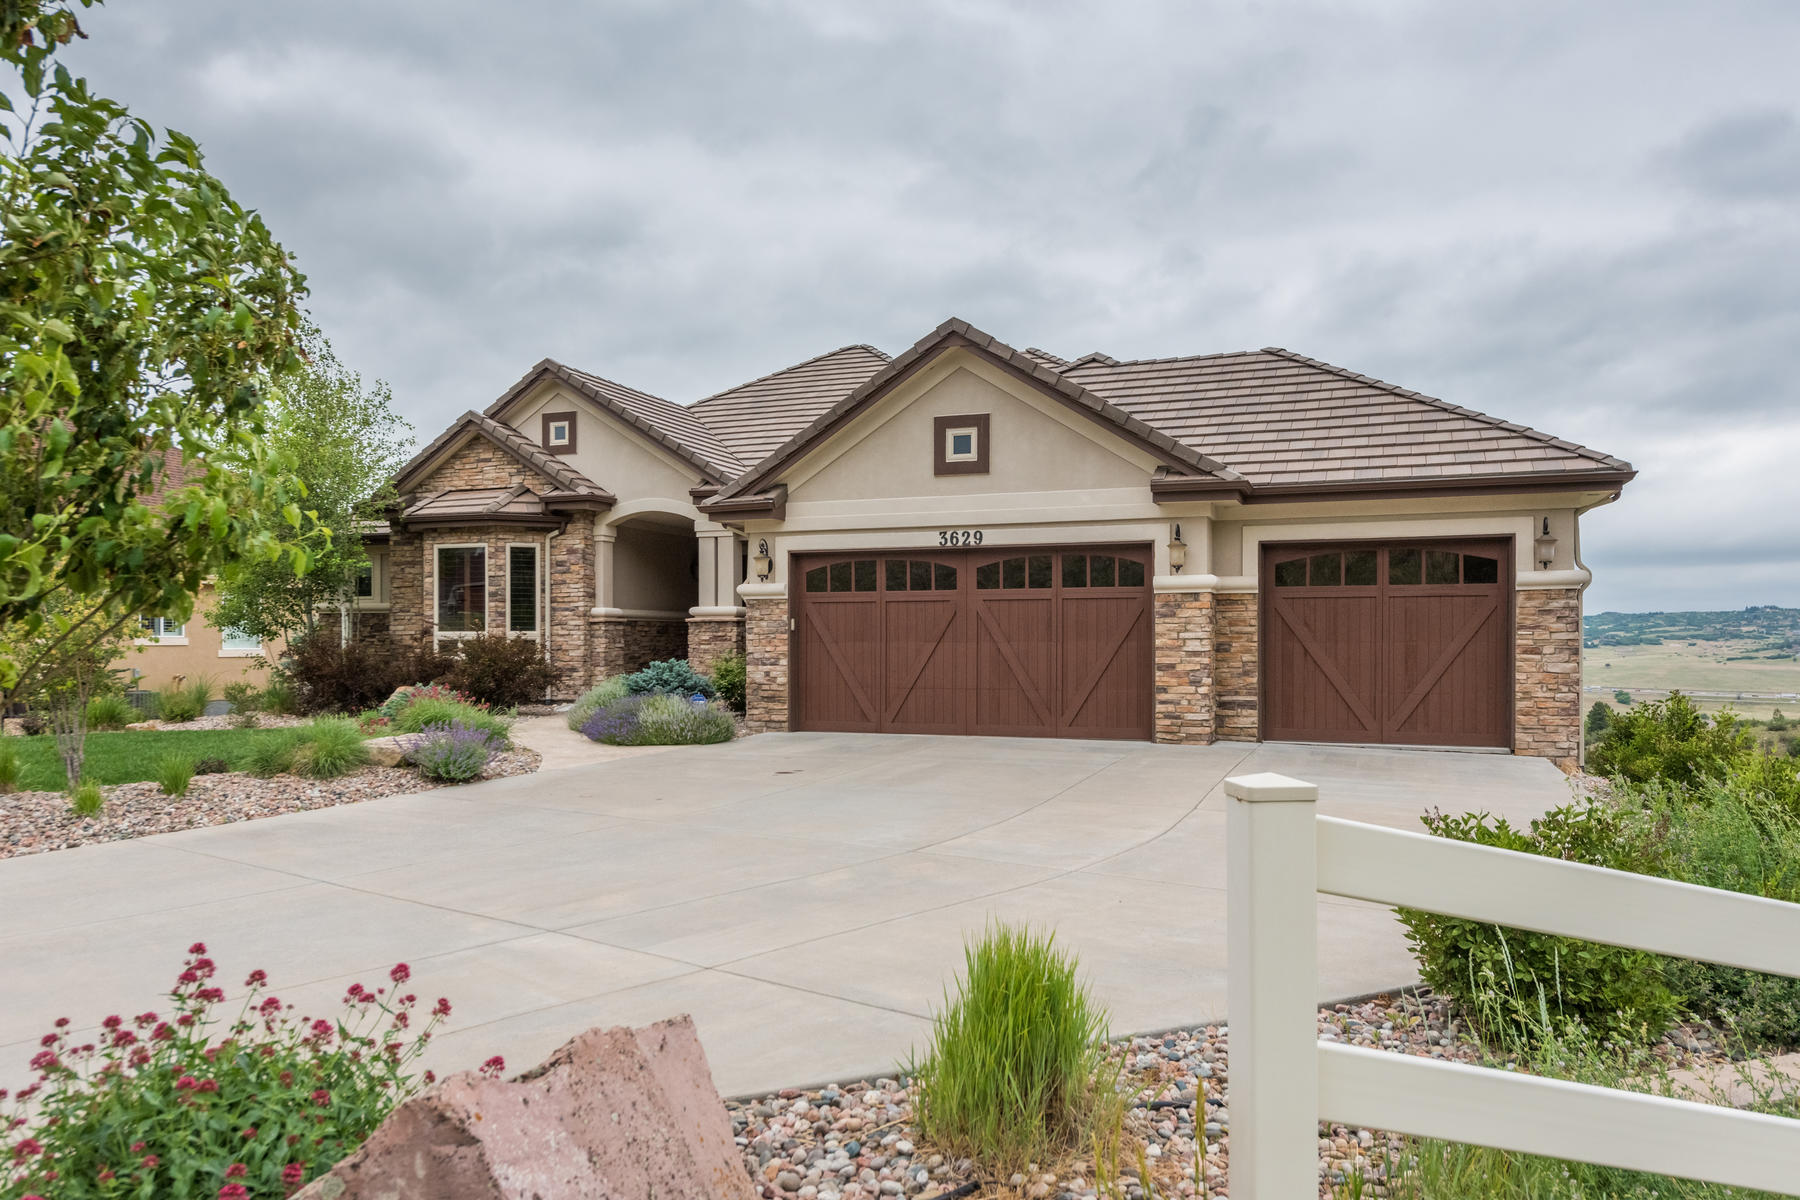 Single Family Home for Active at Panoramic Views From This Gorgeous Custom Ranch Home! 3629 Eveningglow Way Castle Rock, Colorado 80104 United States